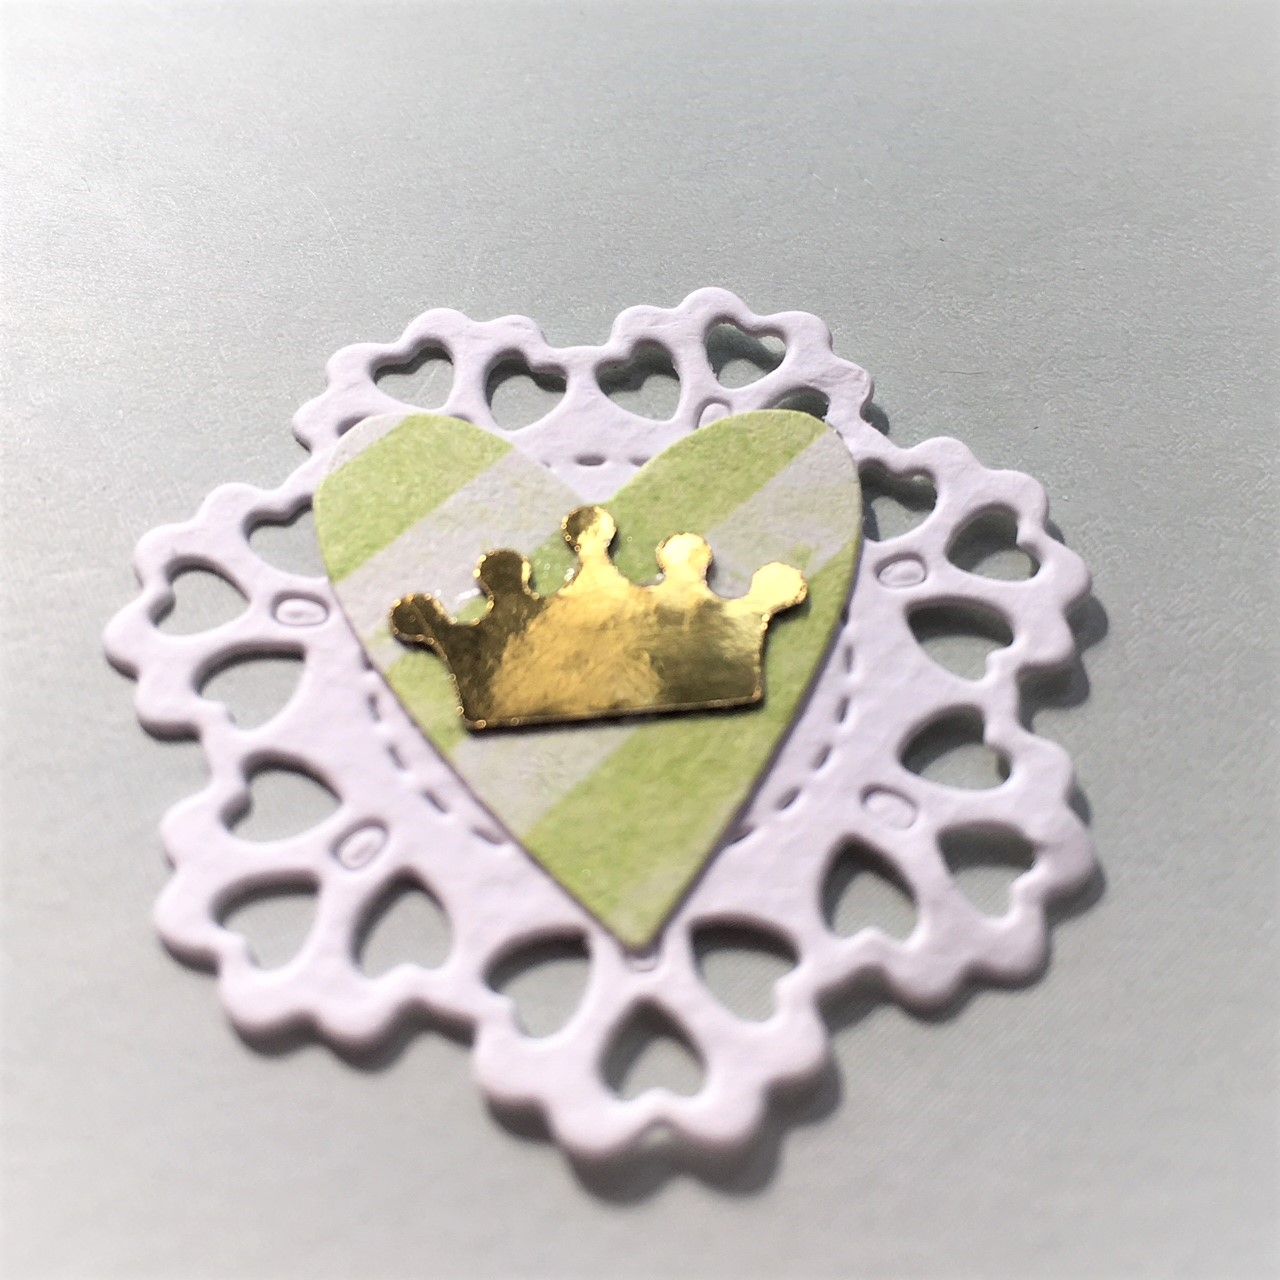 paper embellishment with paper lace, heart and golden cardboard crown - pencils for school princesses